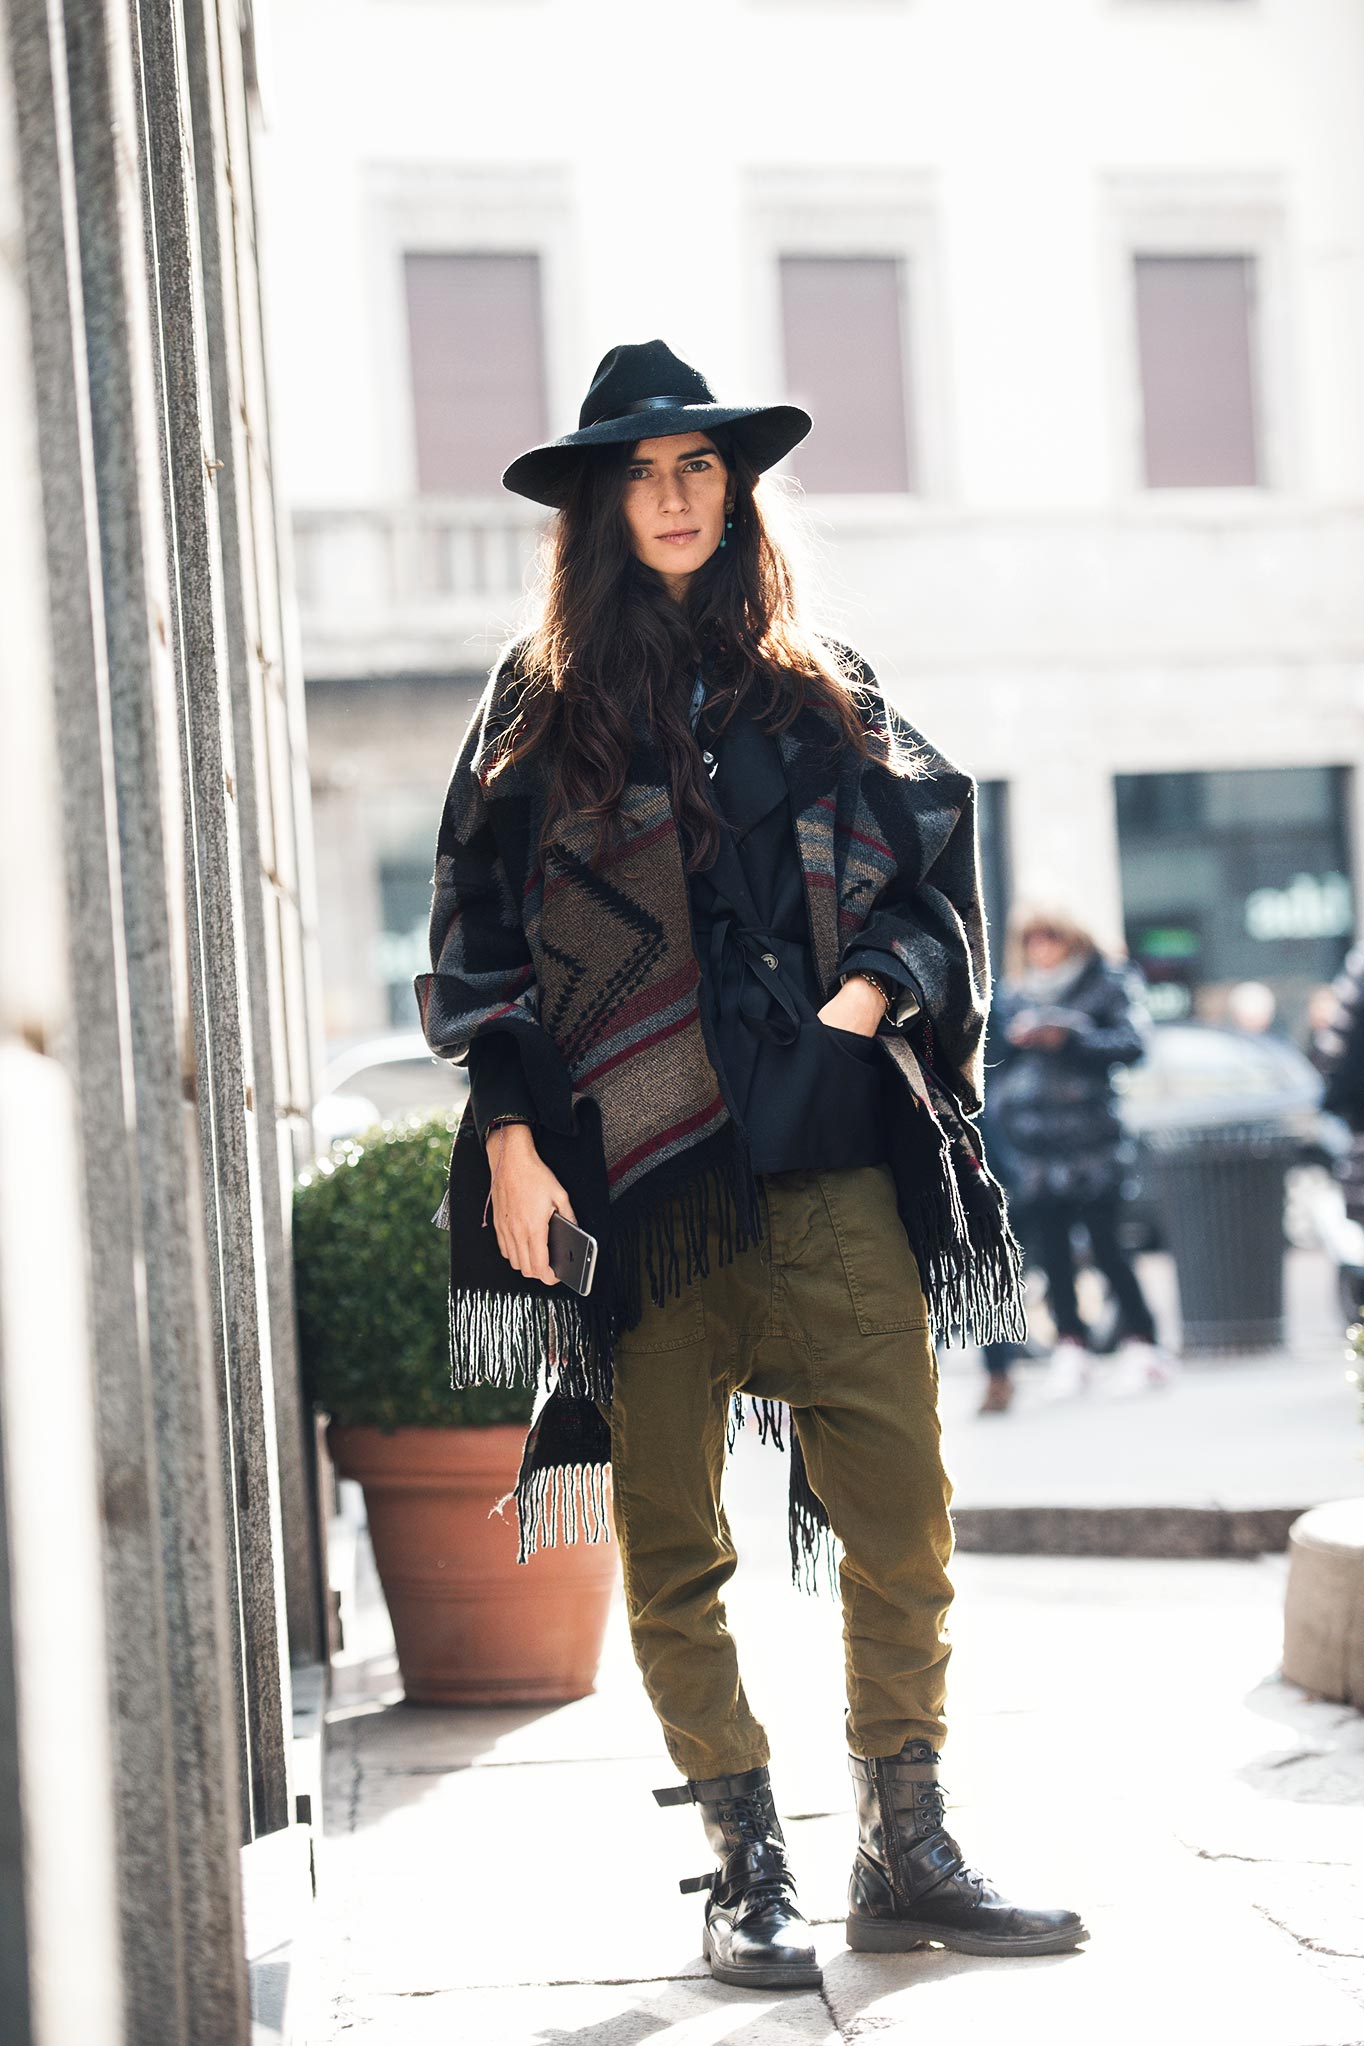 Chiara Totire at Milan Men's Fashion Week Fall/Winter 2015